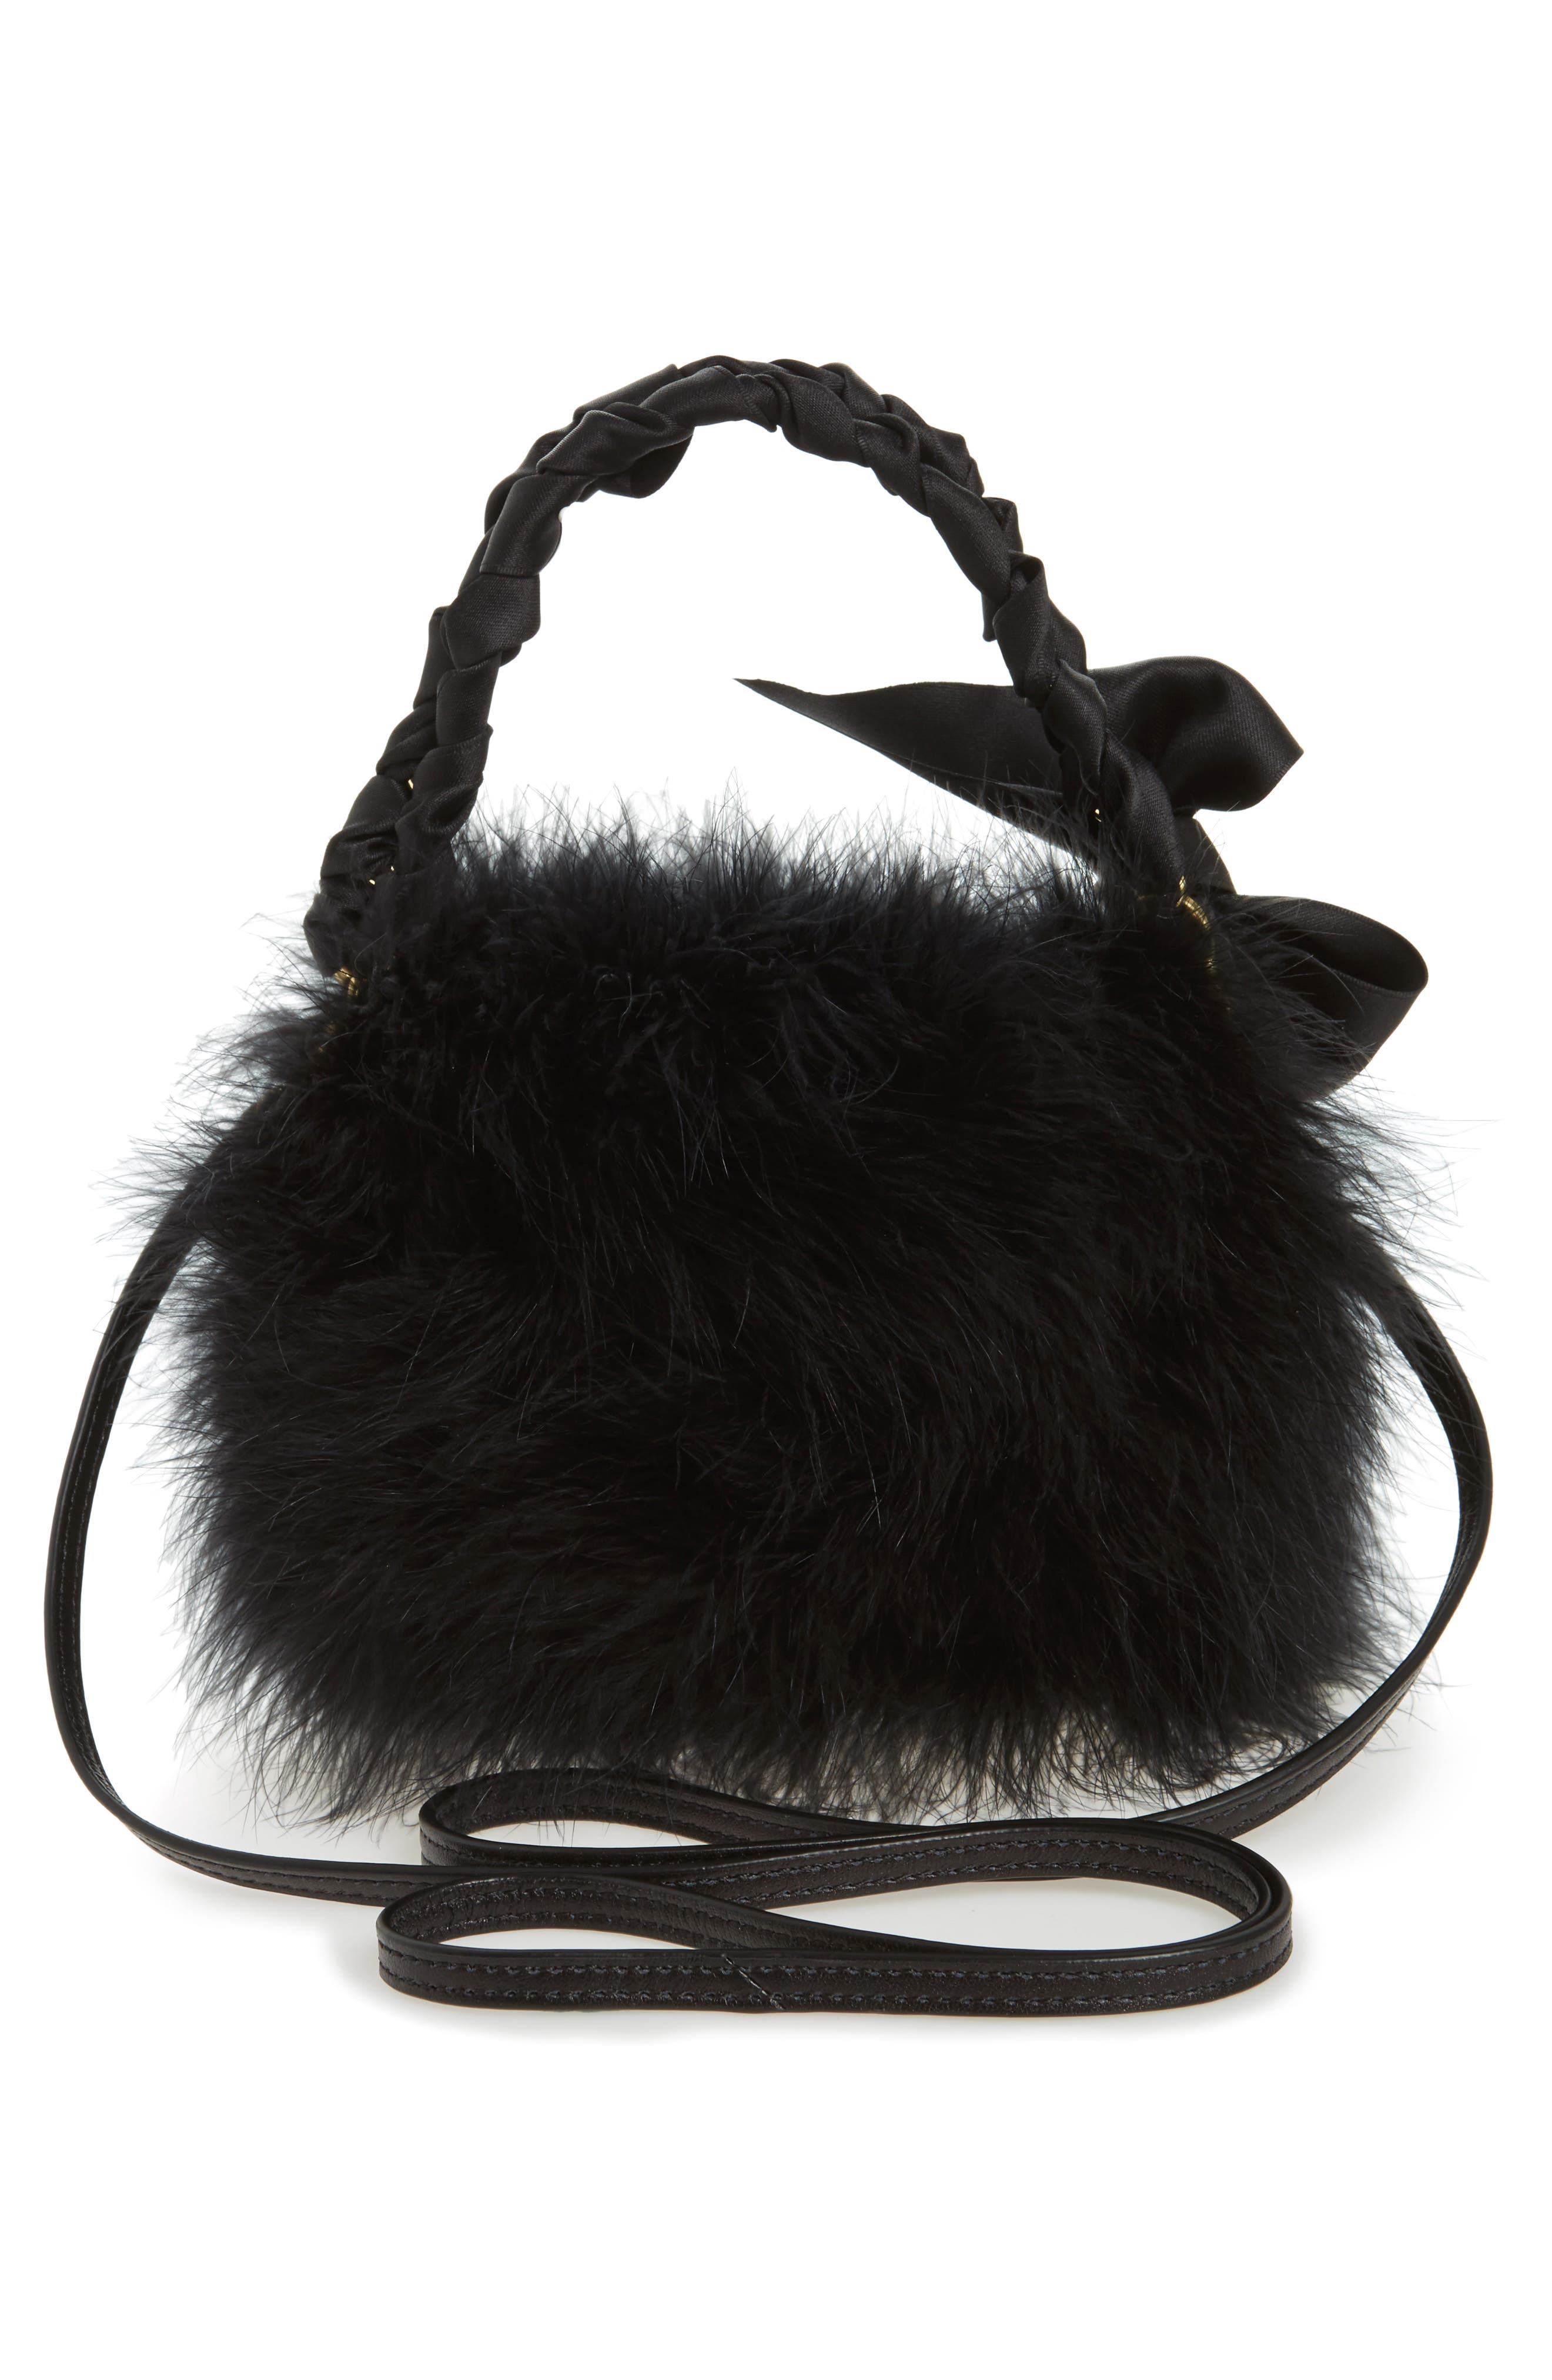 Small Calfskin Leather & Feather Bucket Bag,                             Alternate thumbnail 3, color,                             001